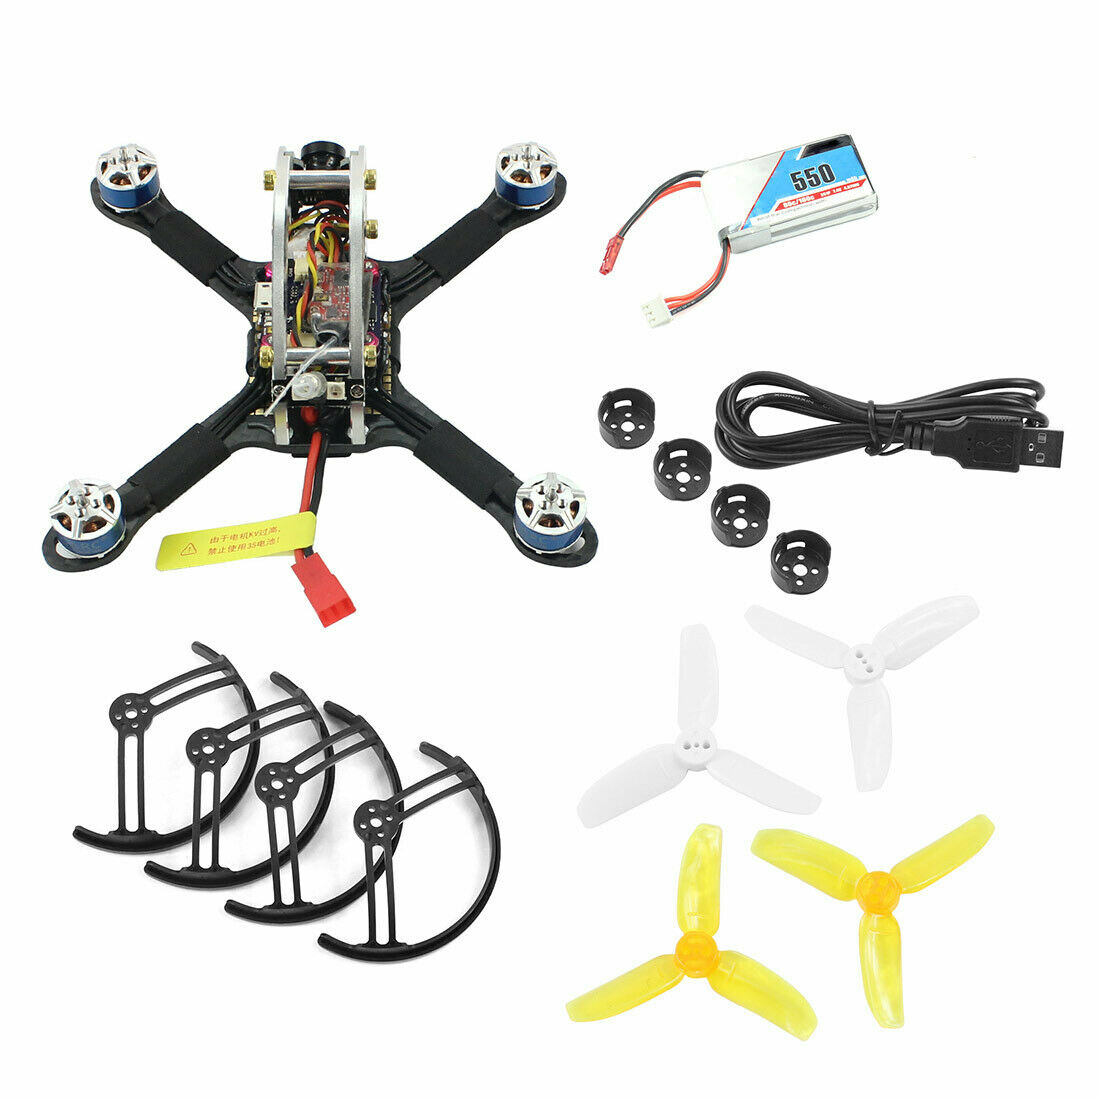 Flyegg 130 PNP FPV Racing Brushless Drone Quadcopter w  DSM2 XM FS-RX2A FM800 RX